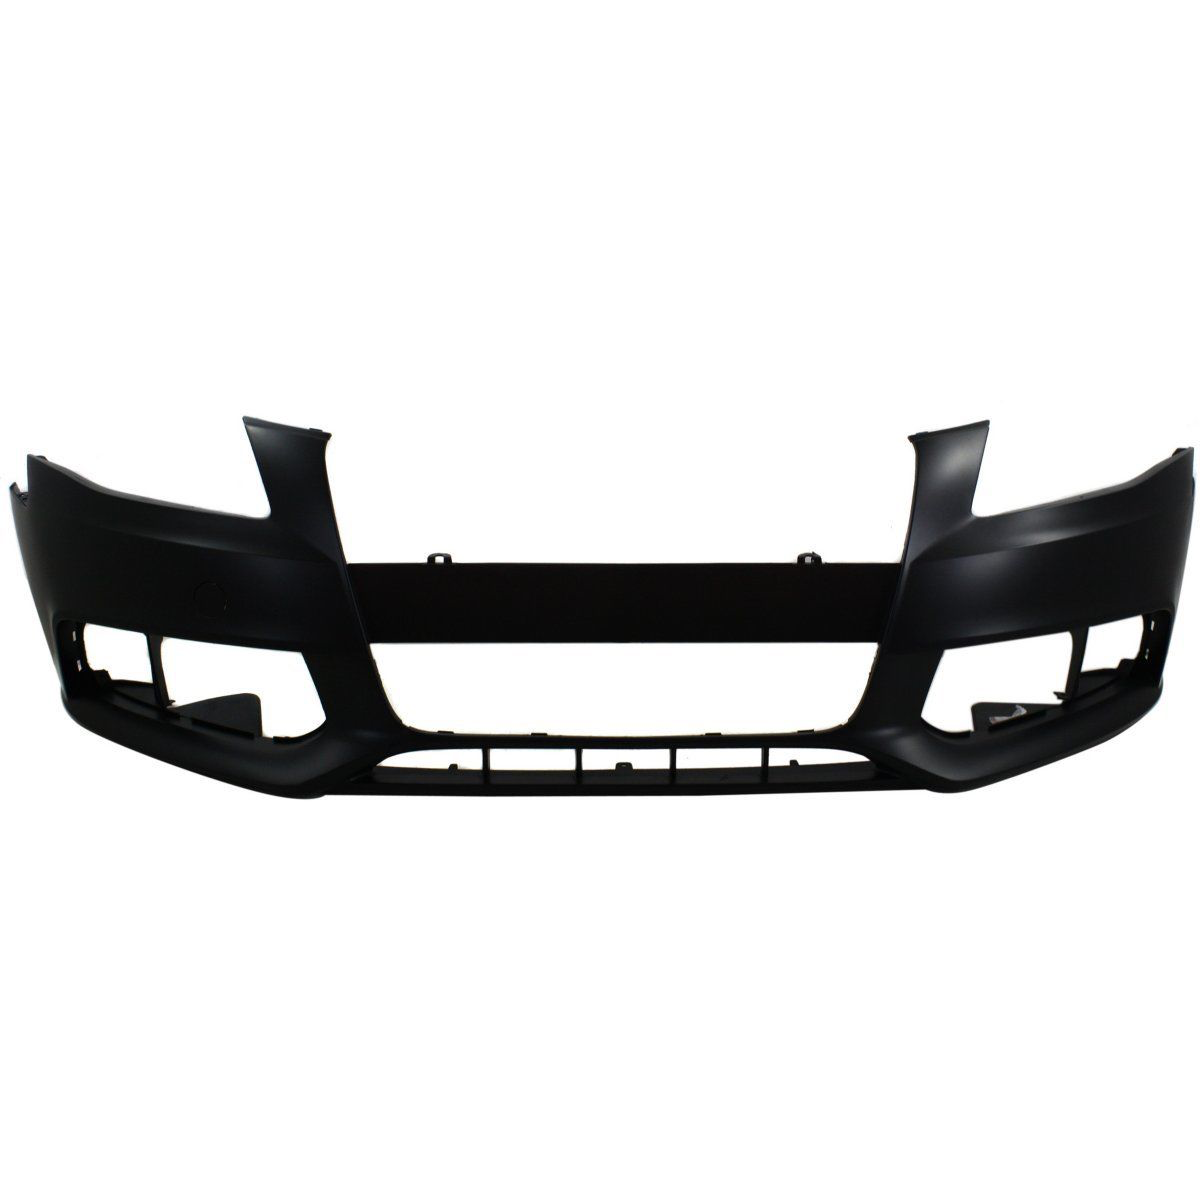 2009-2012 AUDI A4 Front Bumper Cover Sedan/Wagon  w/o S-Line Pkg  w/o Headlamp Washer Painted to Match